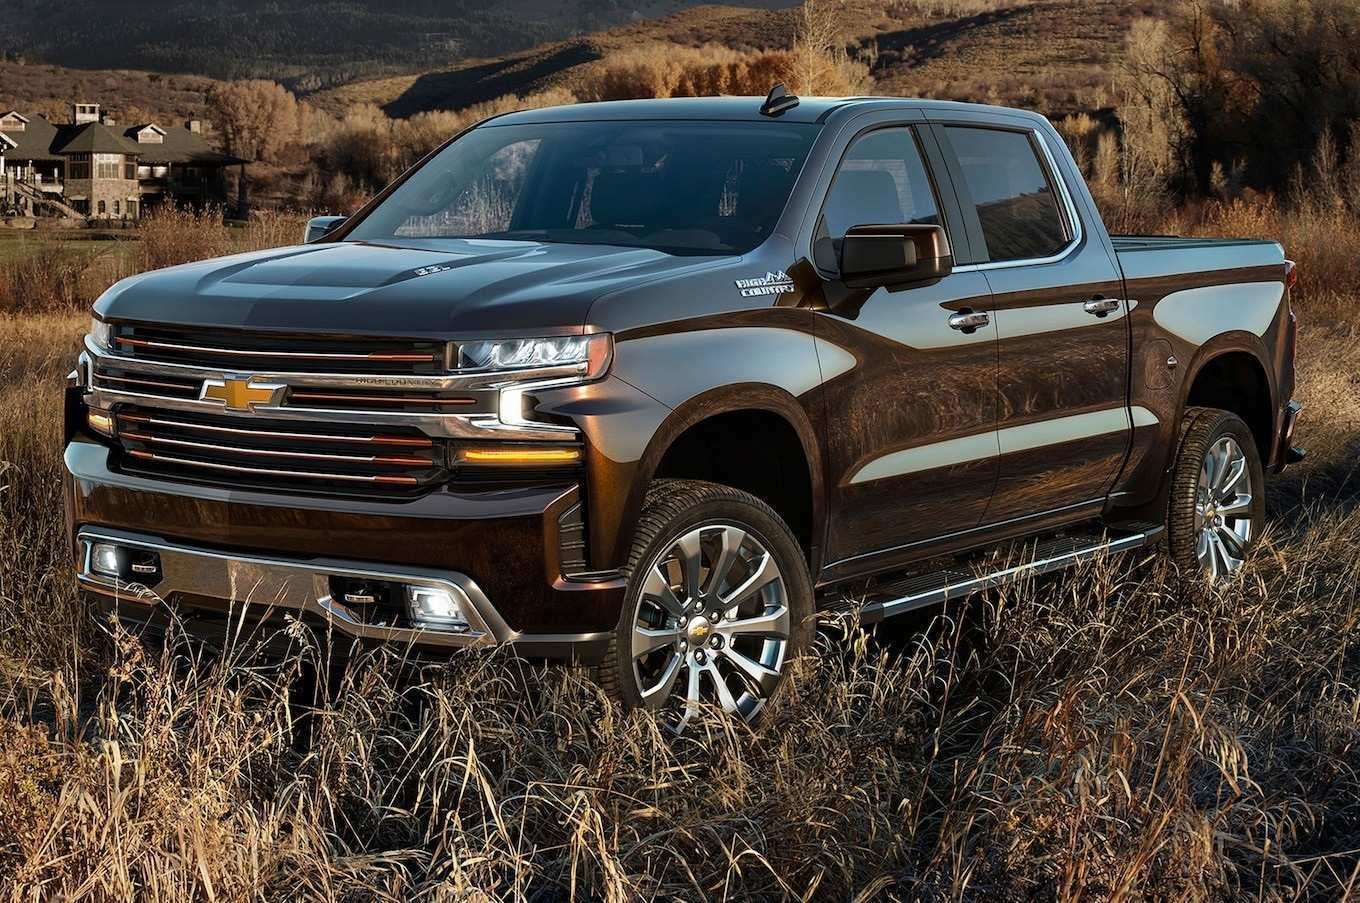 91 All New 2019 Chevy Suburban 2500 Z71 Concept And Review